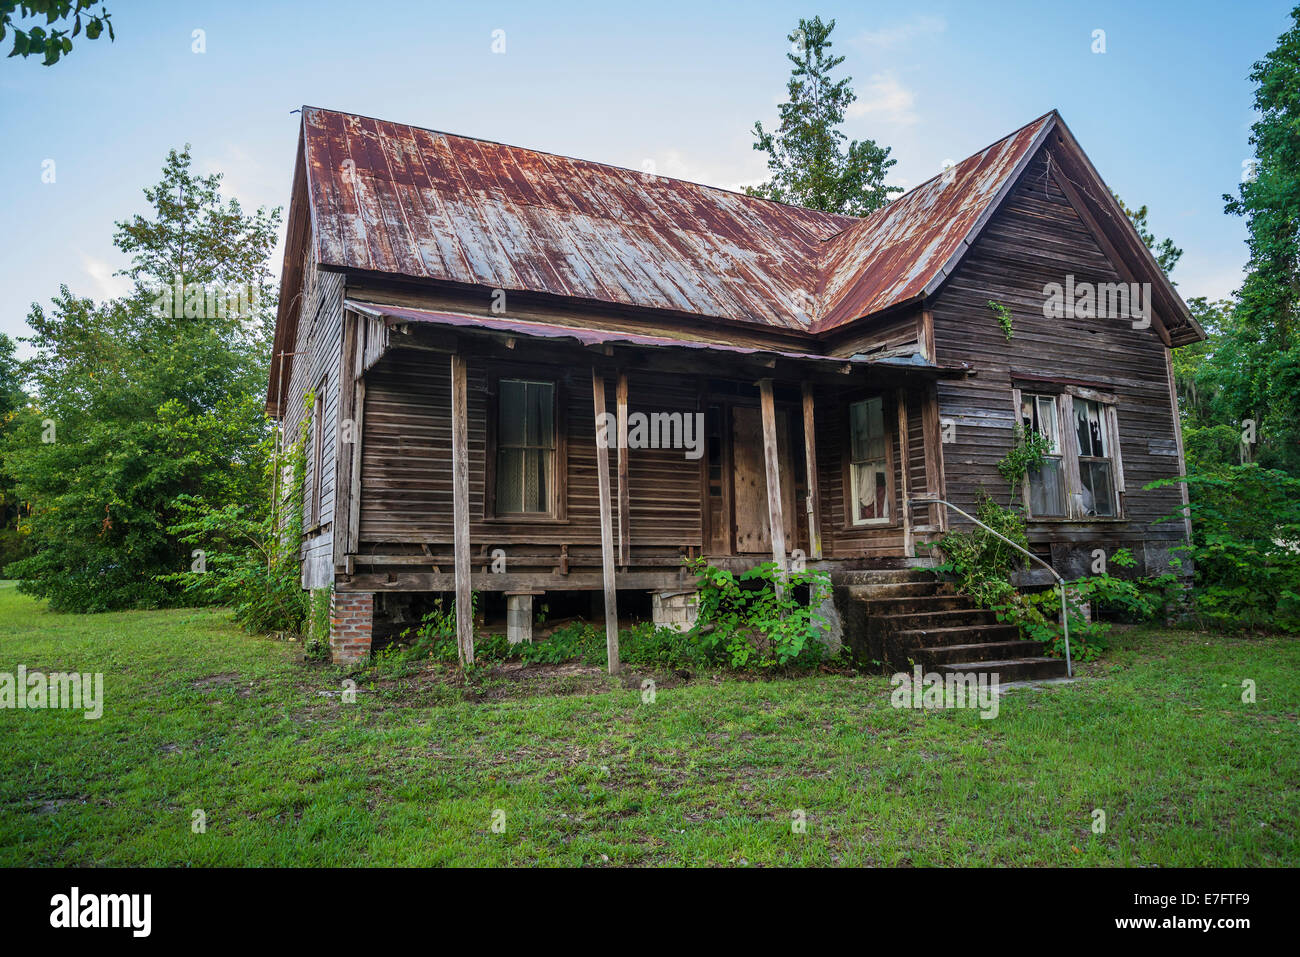 Old abandoned wooden house in rural north florida stock for Wood frame house in florida